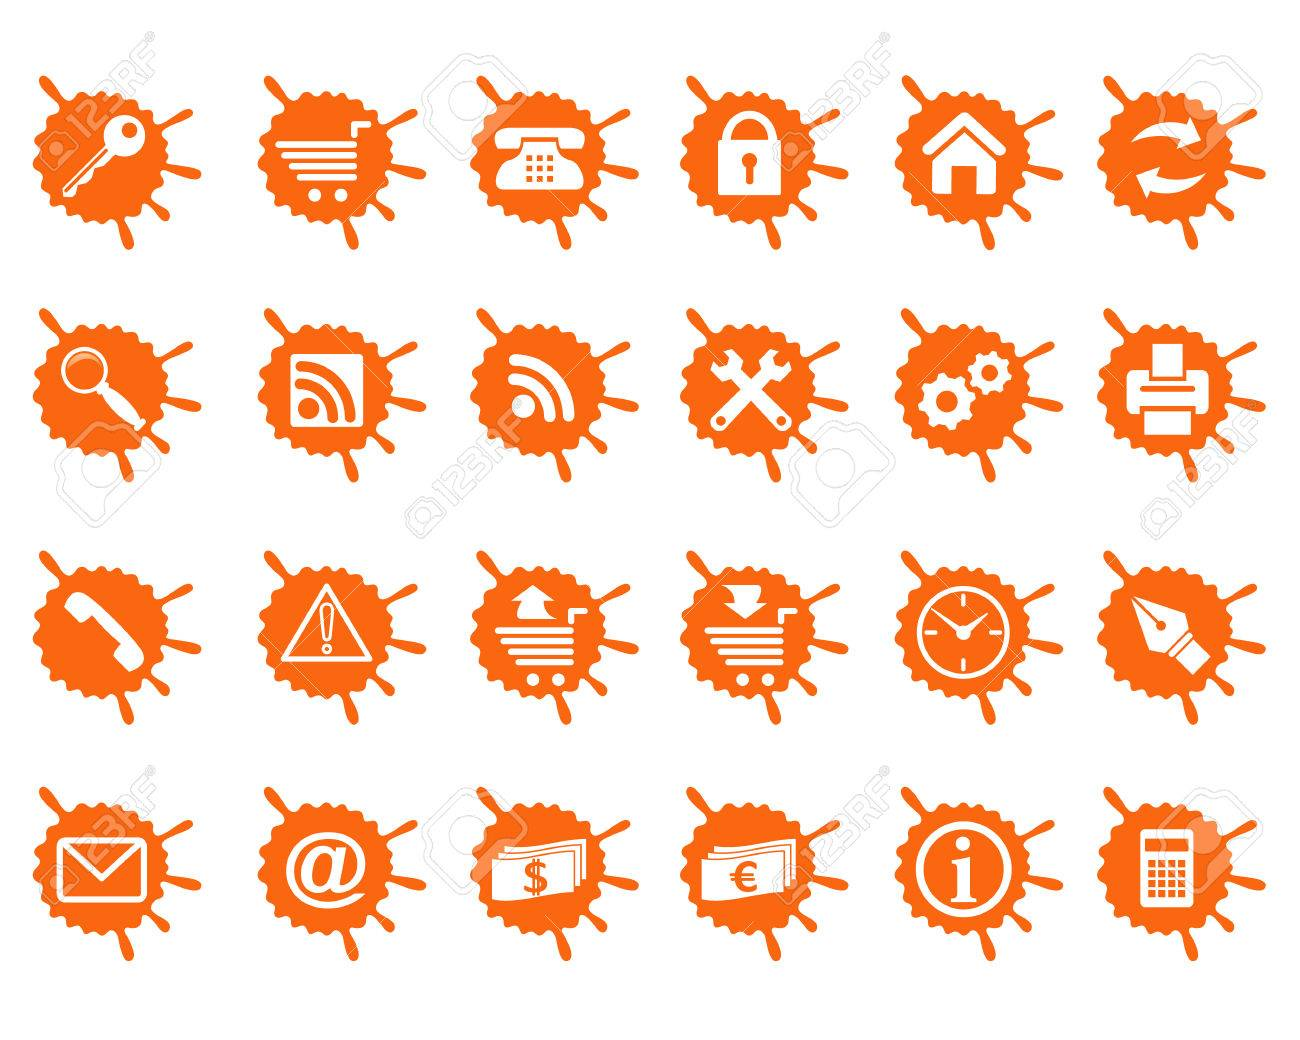 All icons organized in groups for usability. Stock Vector - 4930434